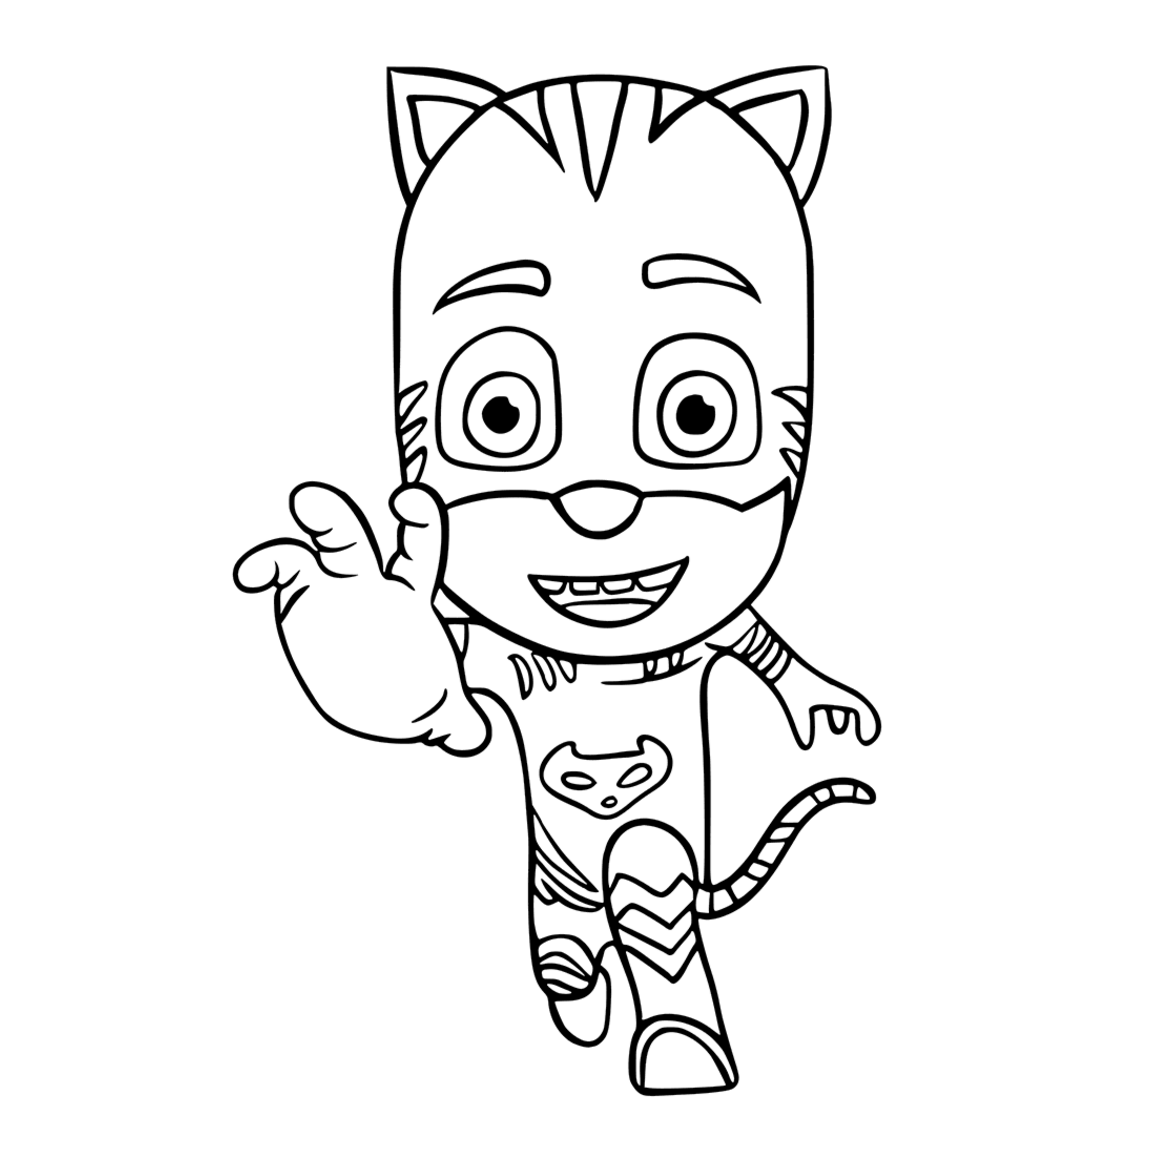 Disney pj masks coloring sheets - Pj Masks Coloring Pages To Download And Print For Free